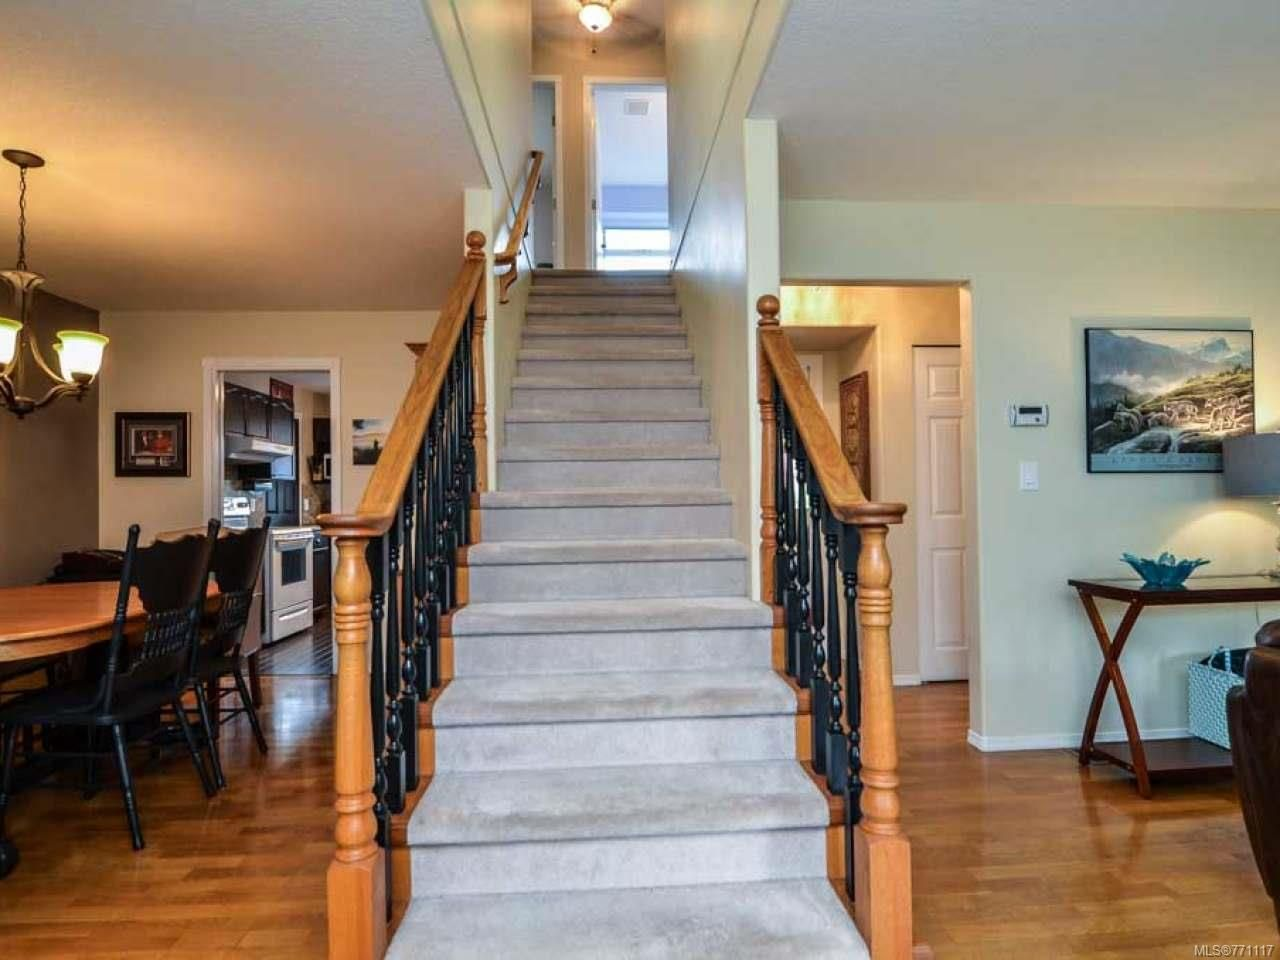 Photo 20: Photos: 697 Steenbuck Dr in CAMPBELL RIVER: CR Campbell River Central House for sale (Campbell River)  : MLS®# 771117